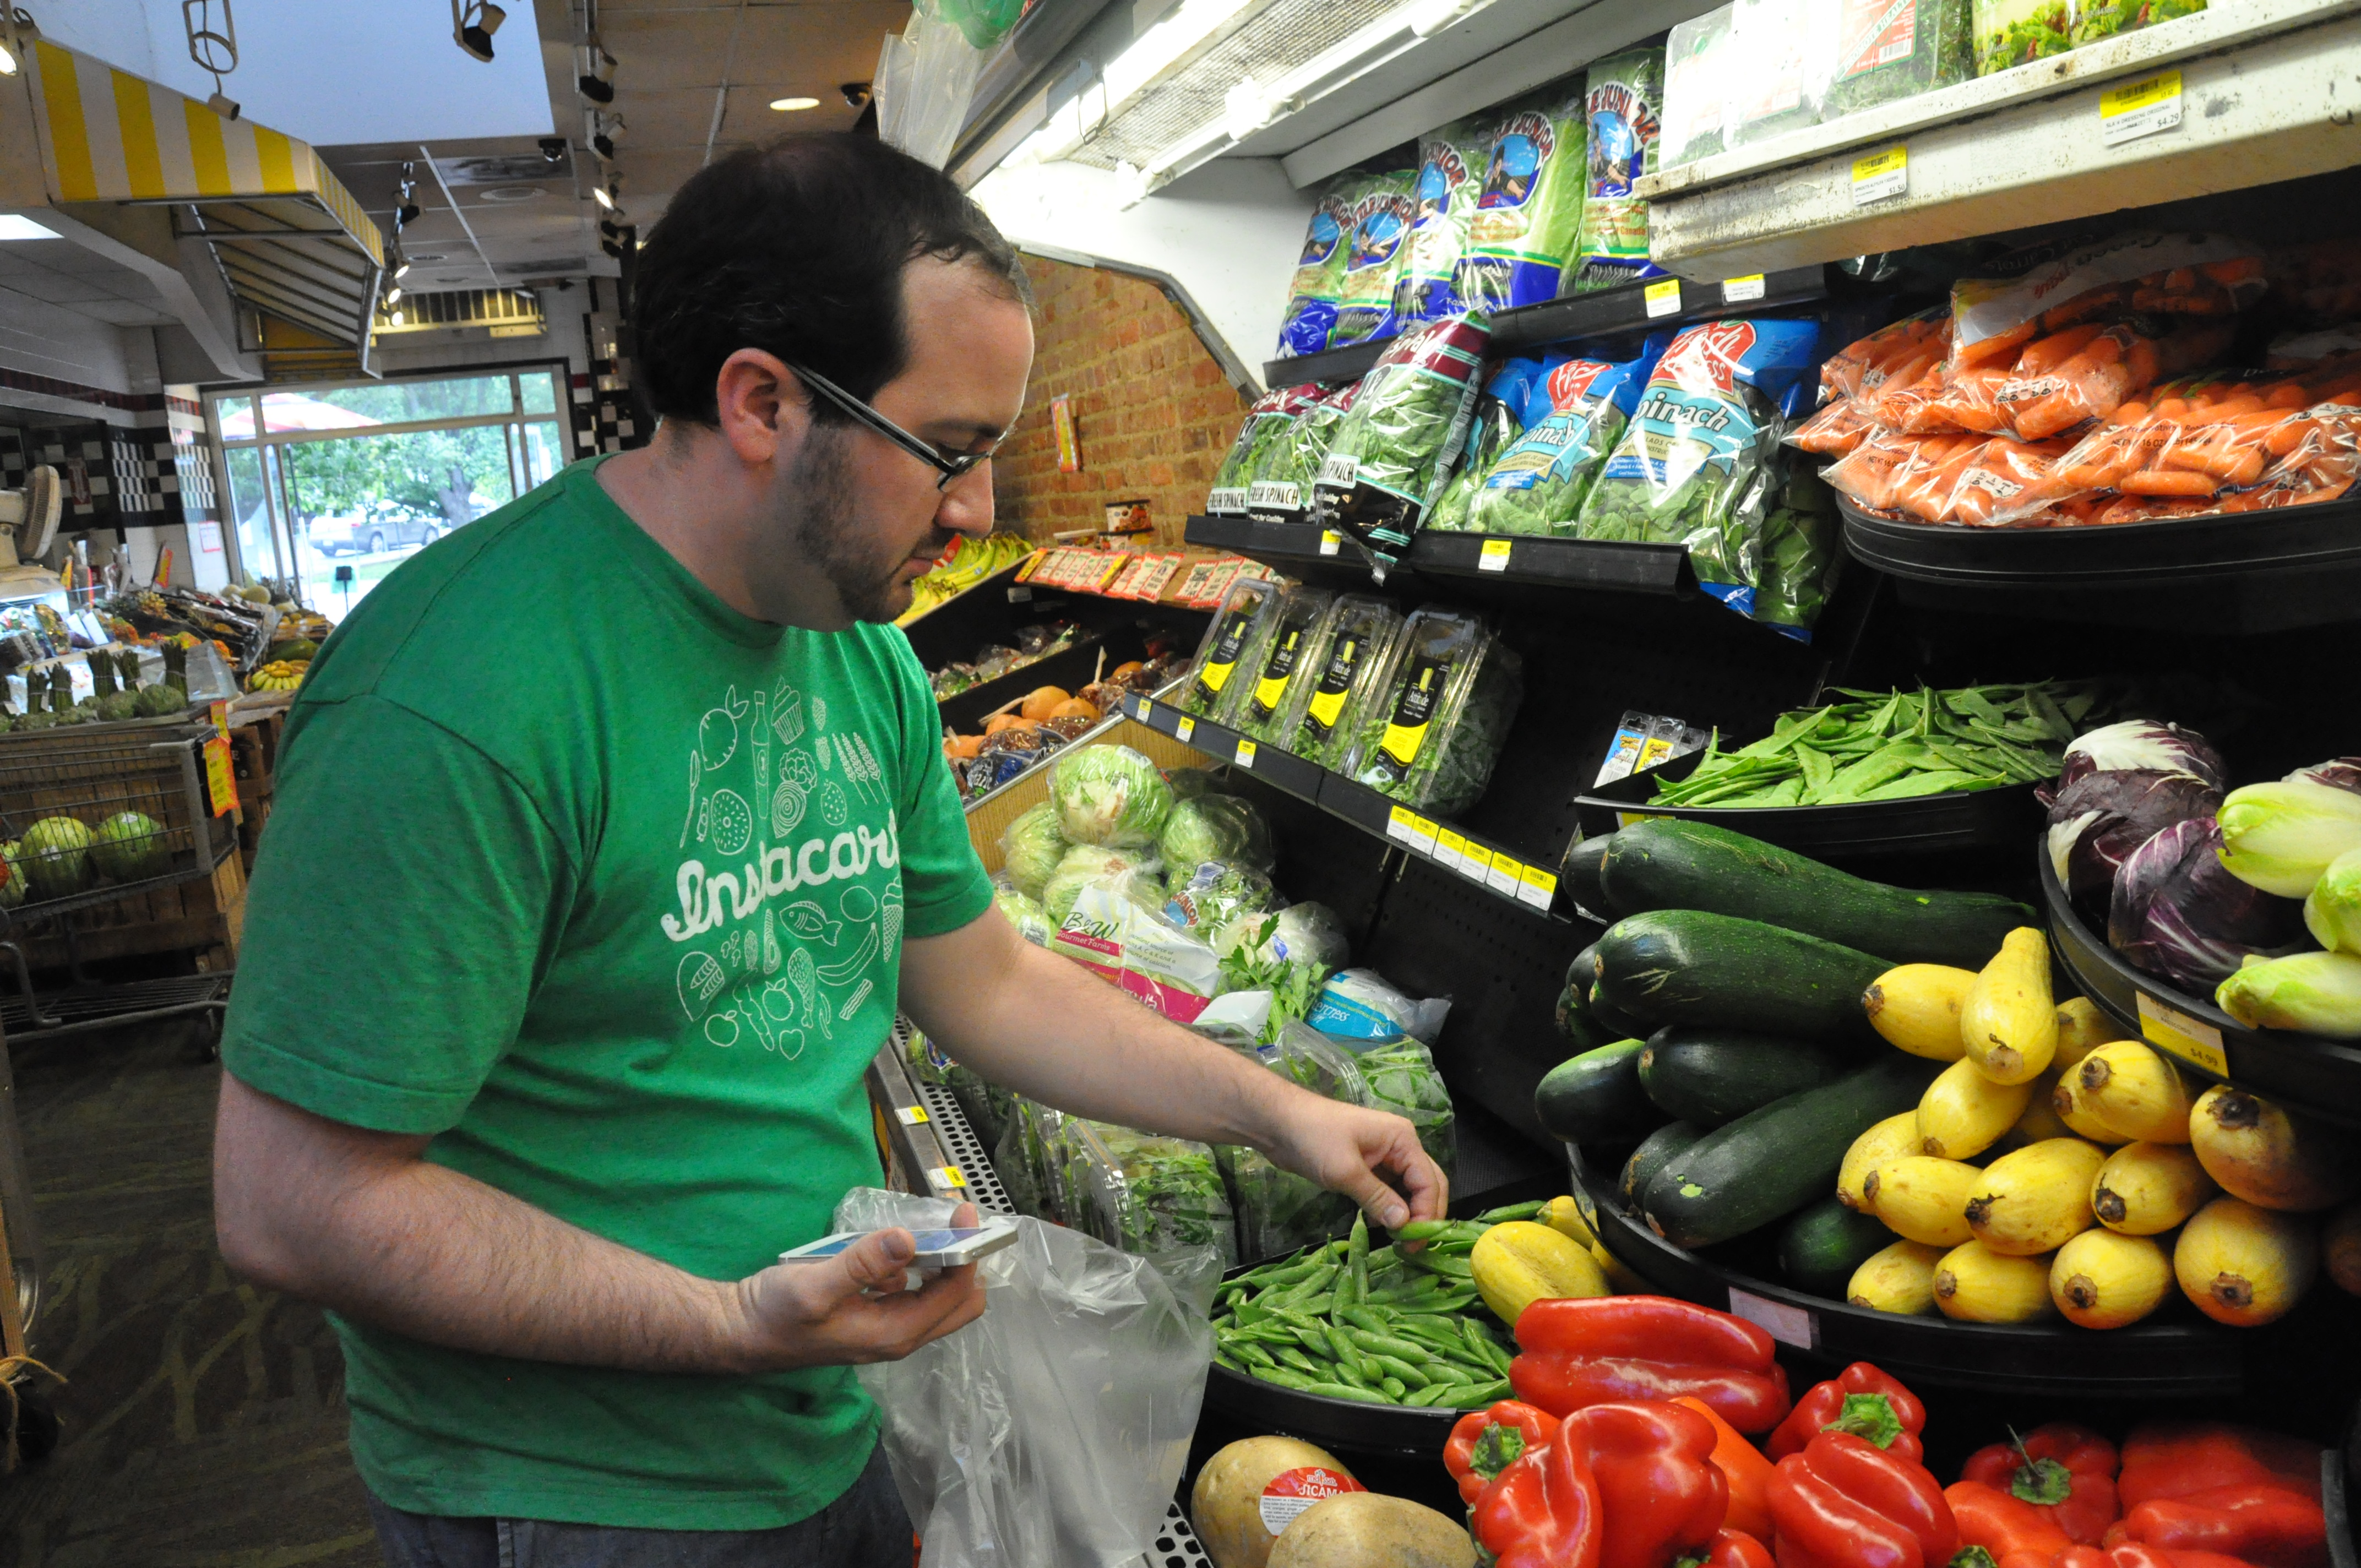 On-demand groceries: Fill your fridge in 1 hour | WTOP